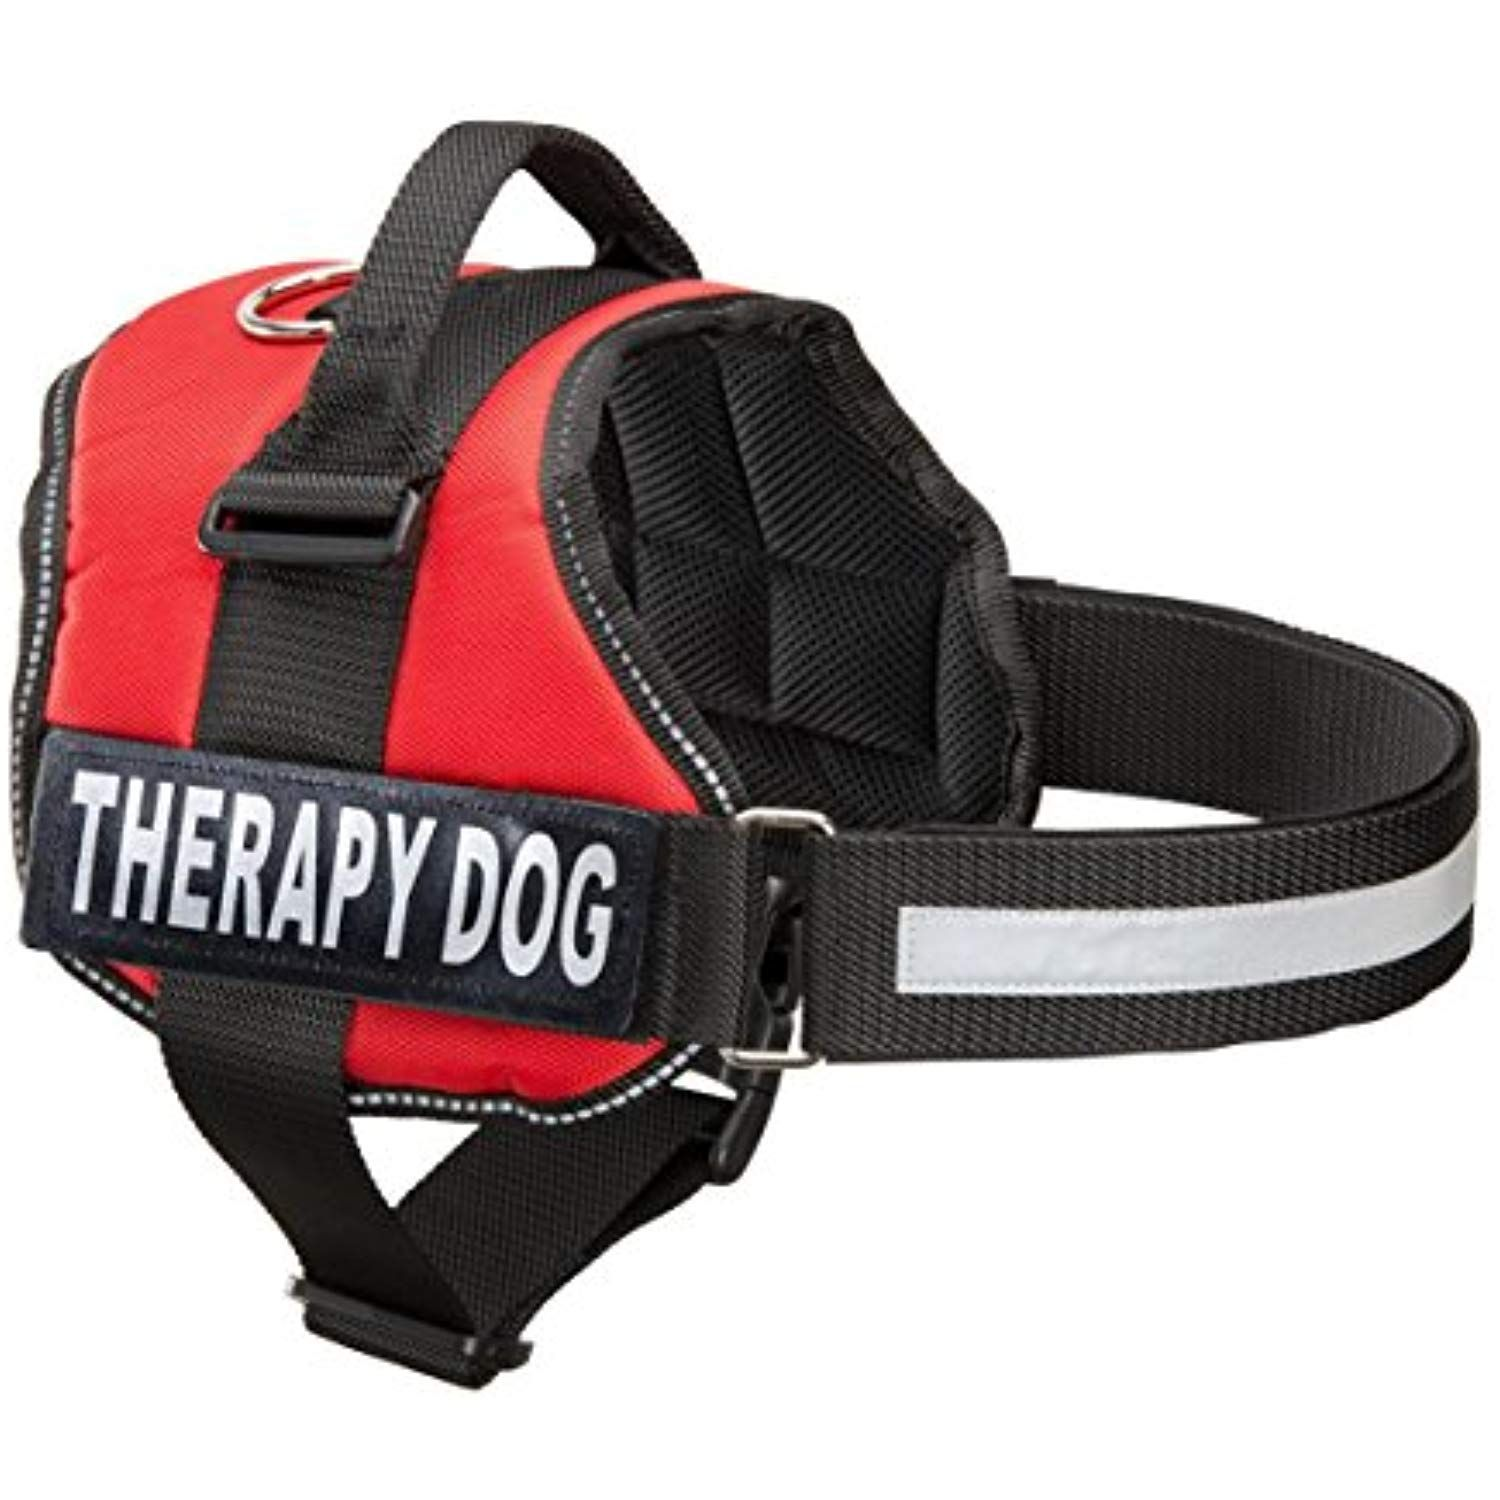 Industrial Puppy Therapy Dog Vest Harness Training Dog Vest With